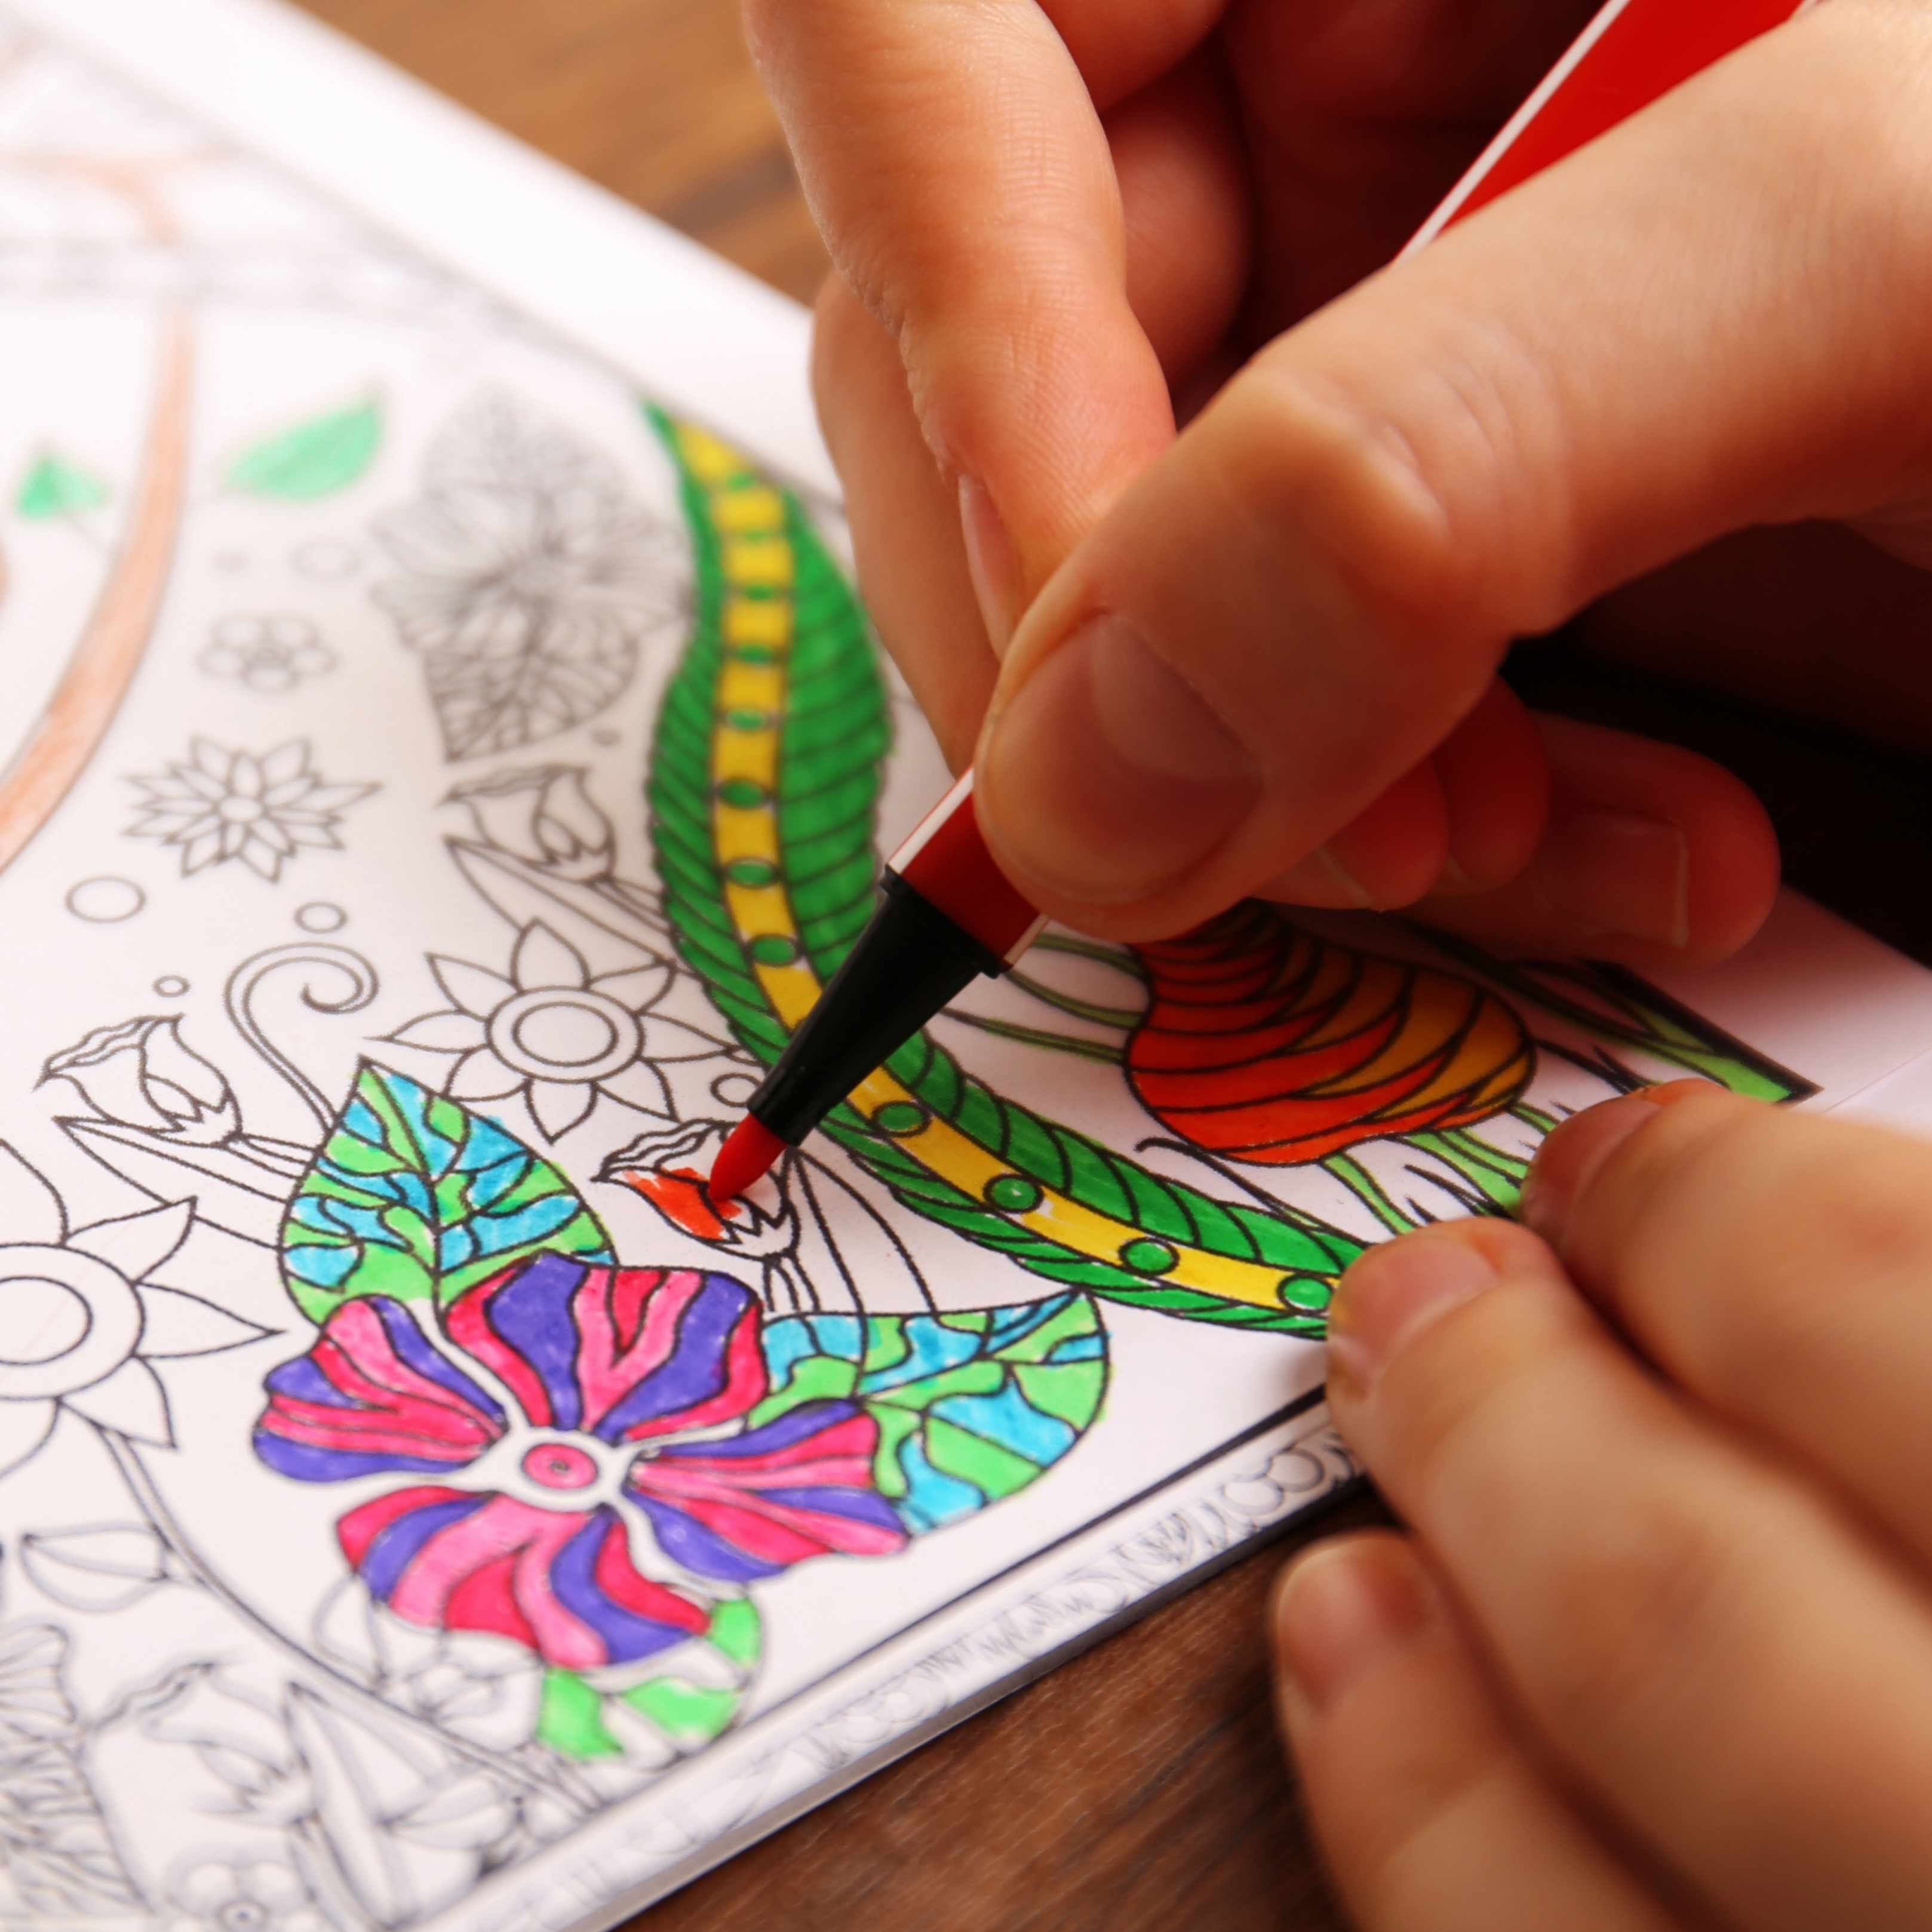 a person using coloring pens and pencils in a coloring book